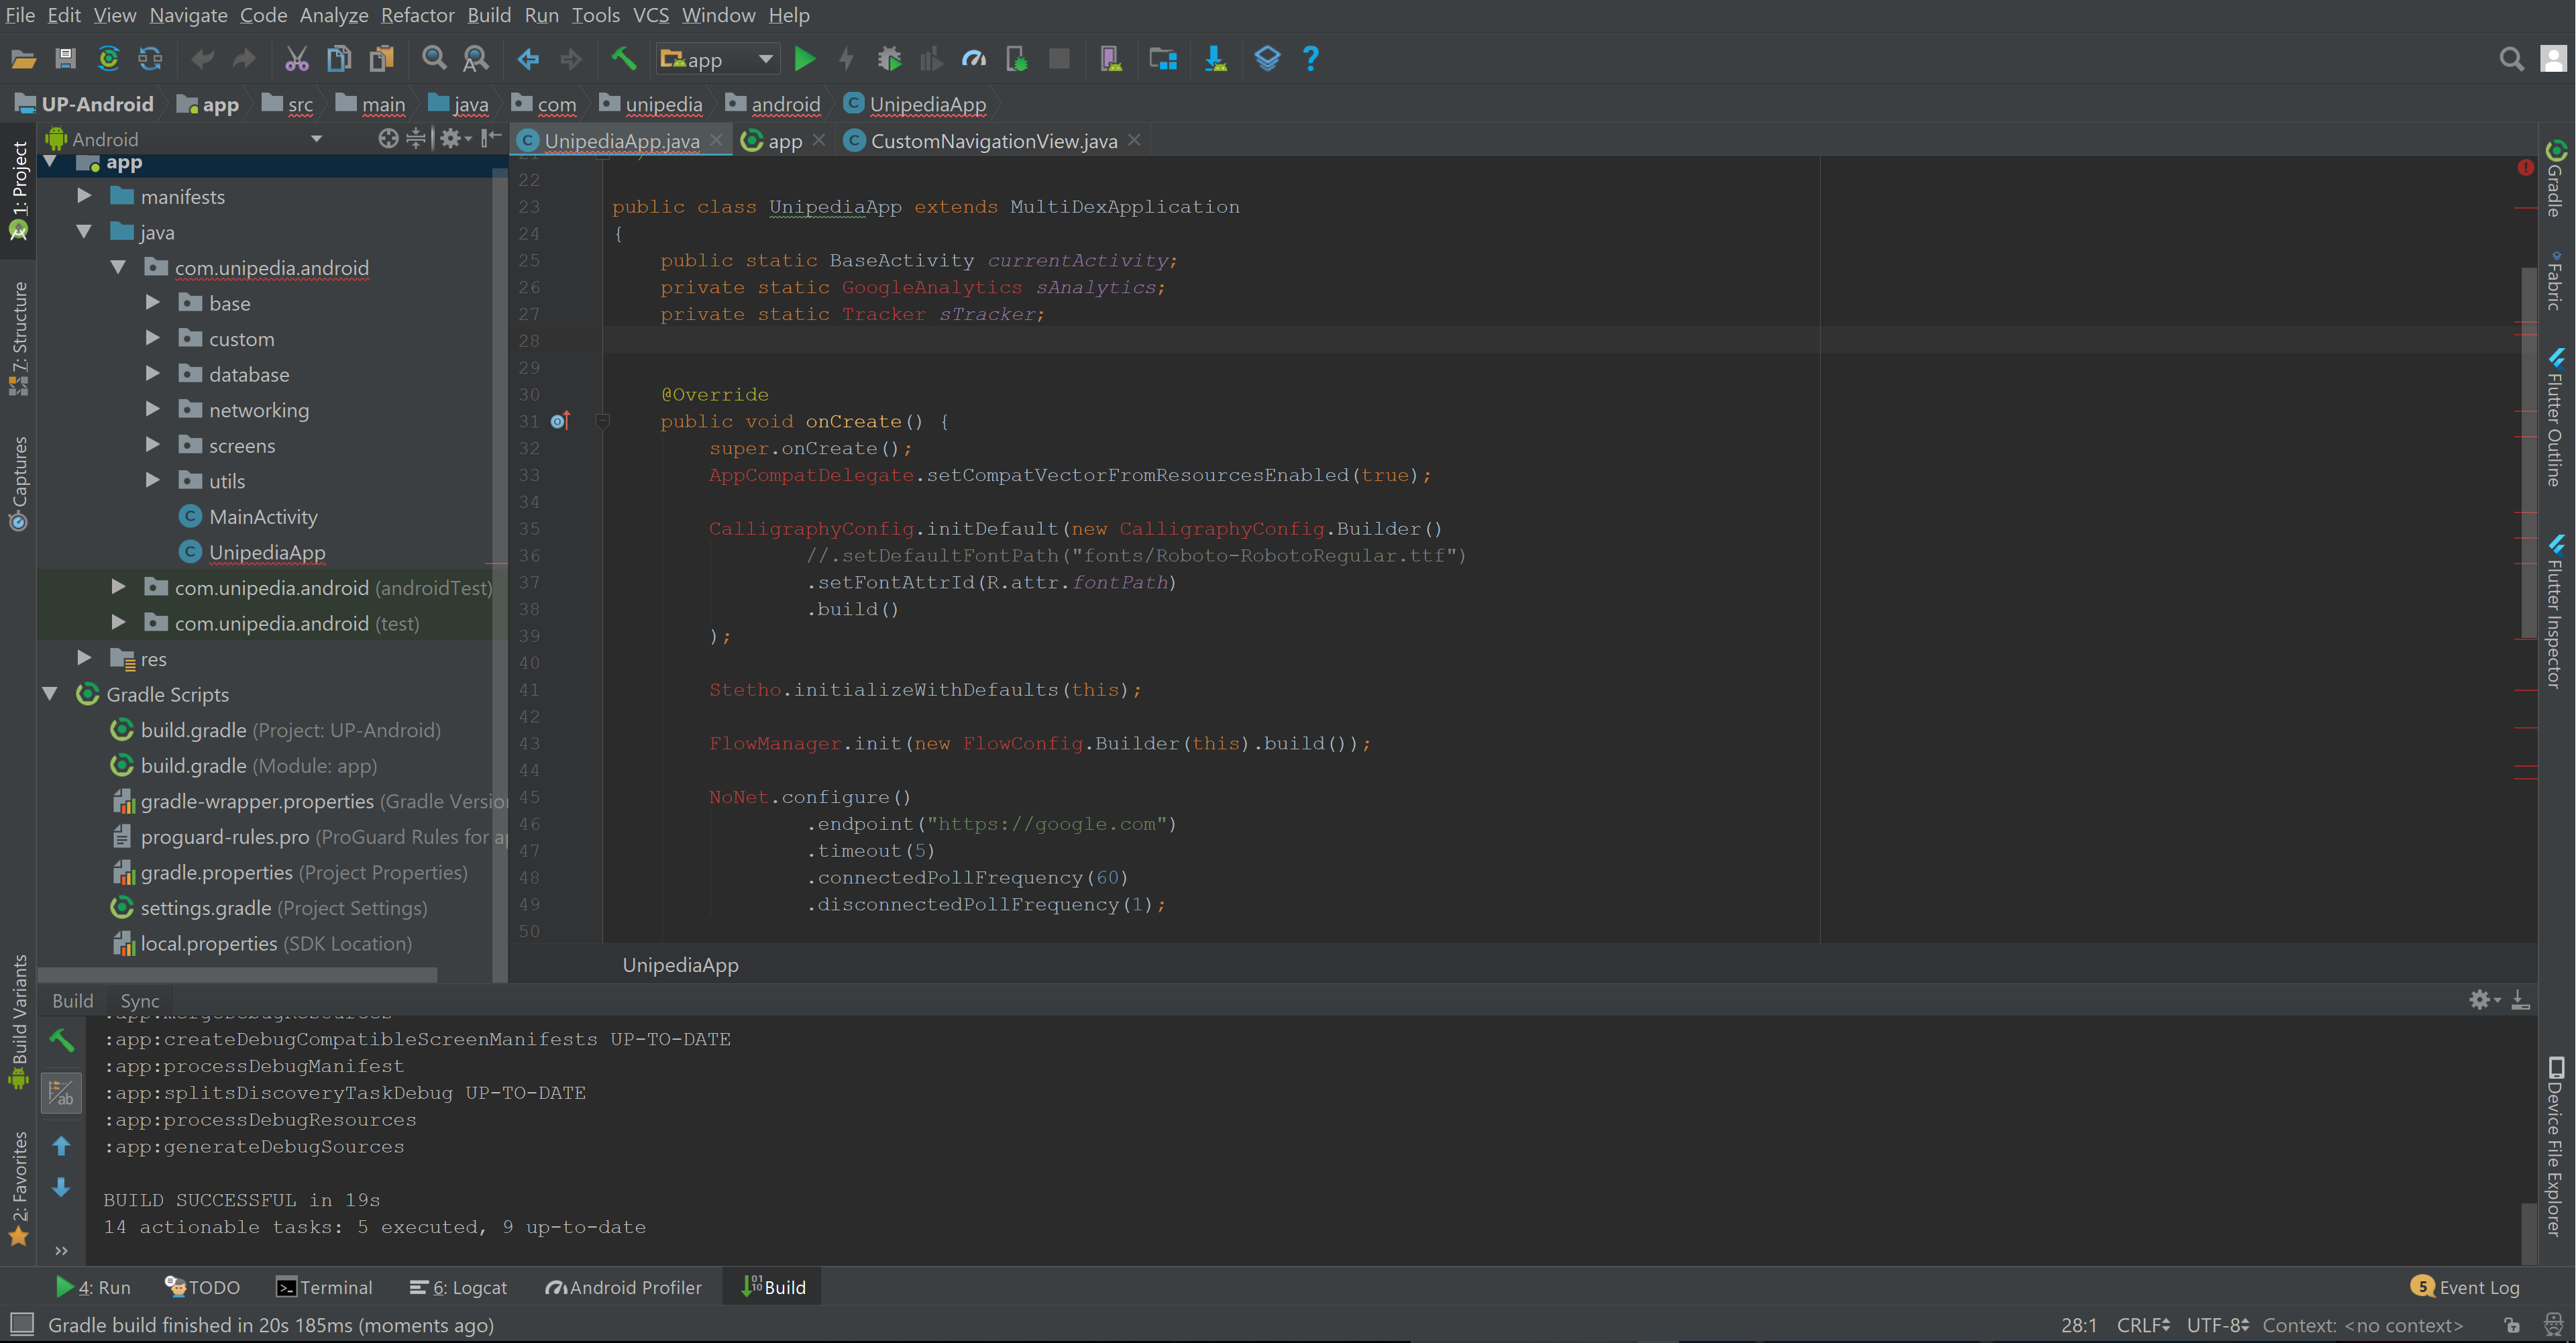 Lots of Errors in Code but Still App Runs in Android Studio